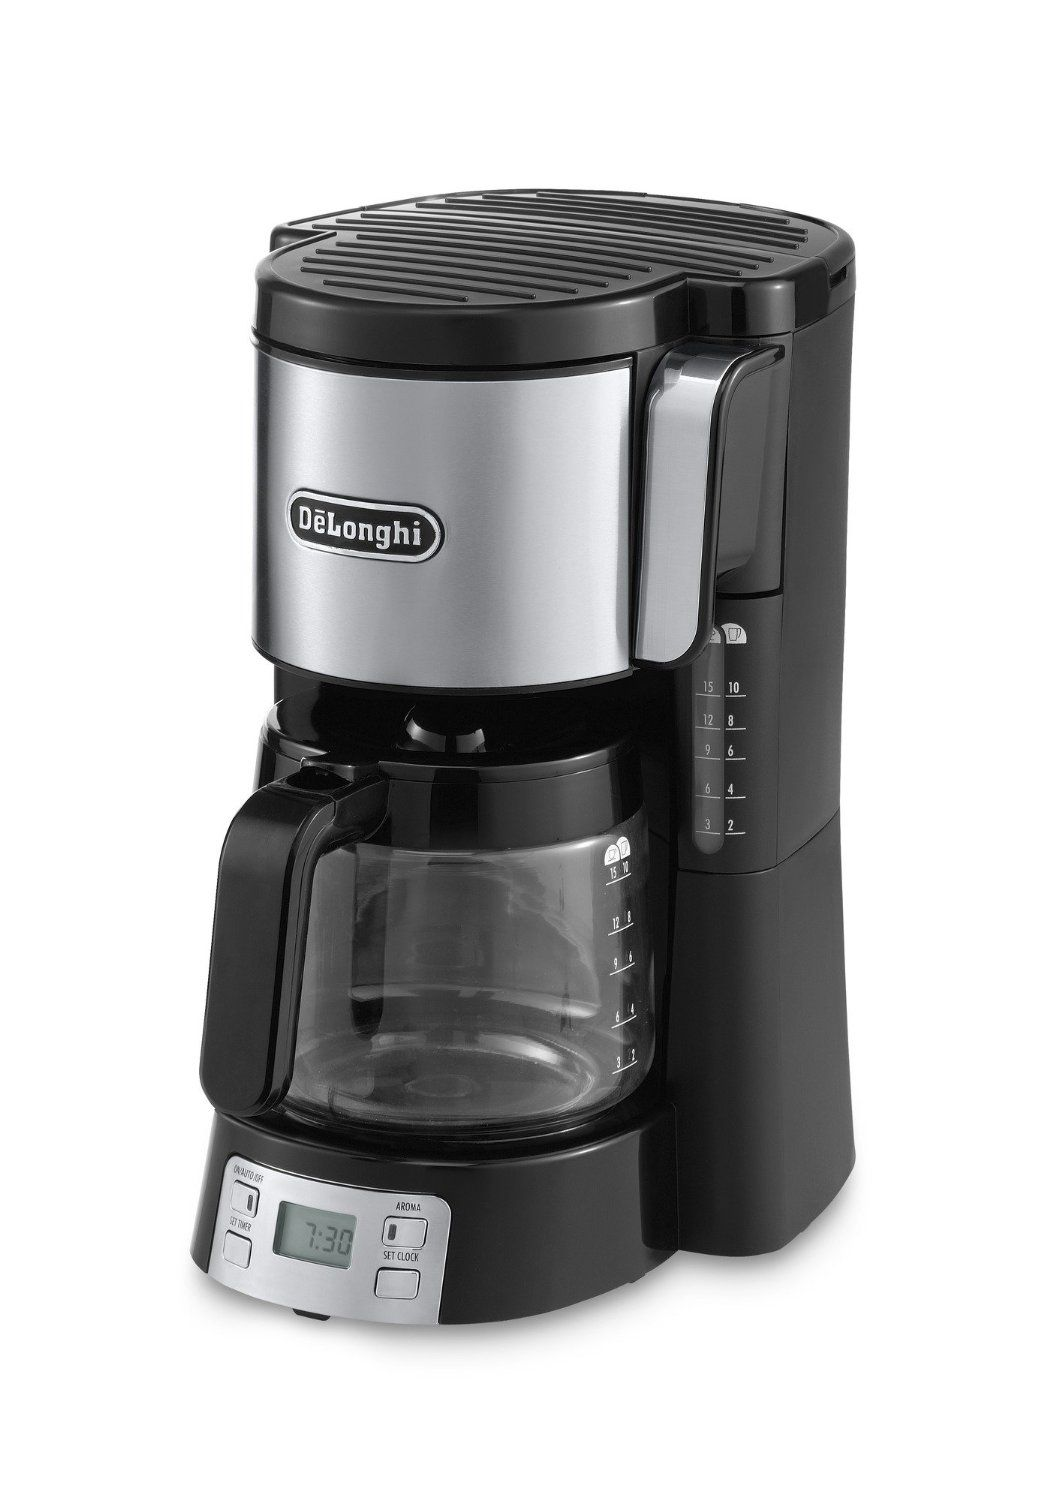 delonghi drip coffee machine icm15250. Black Bedroom Furniture Sets. Home Design Ideas